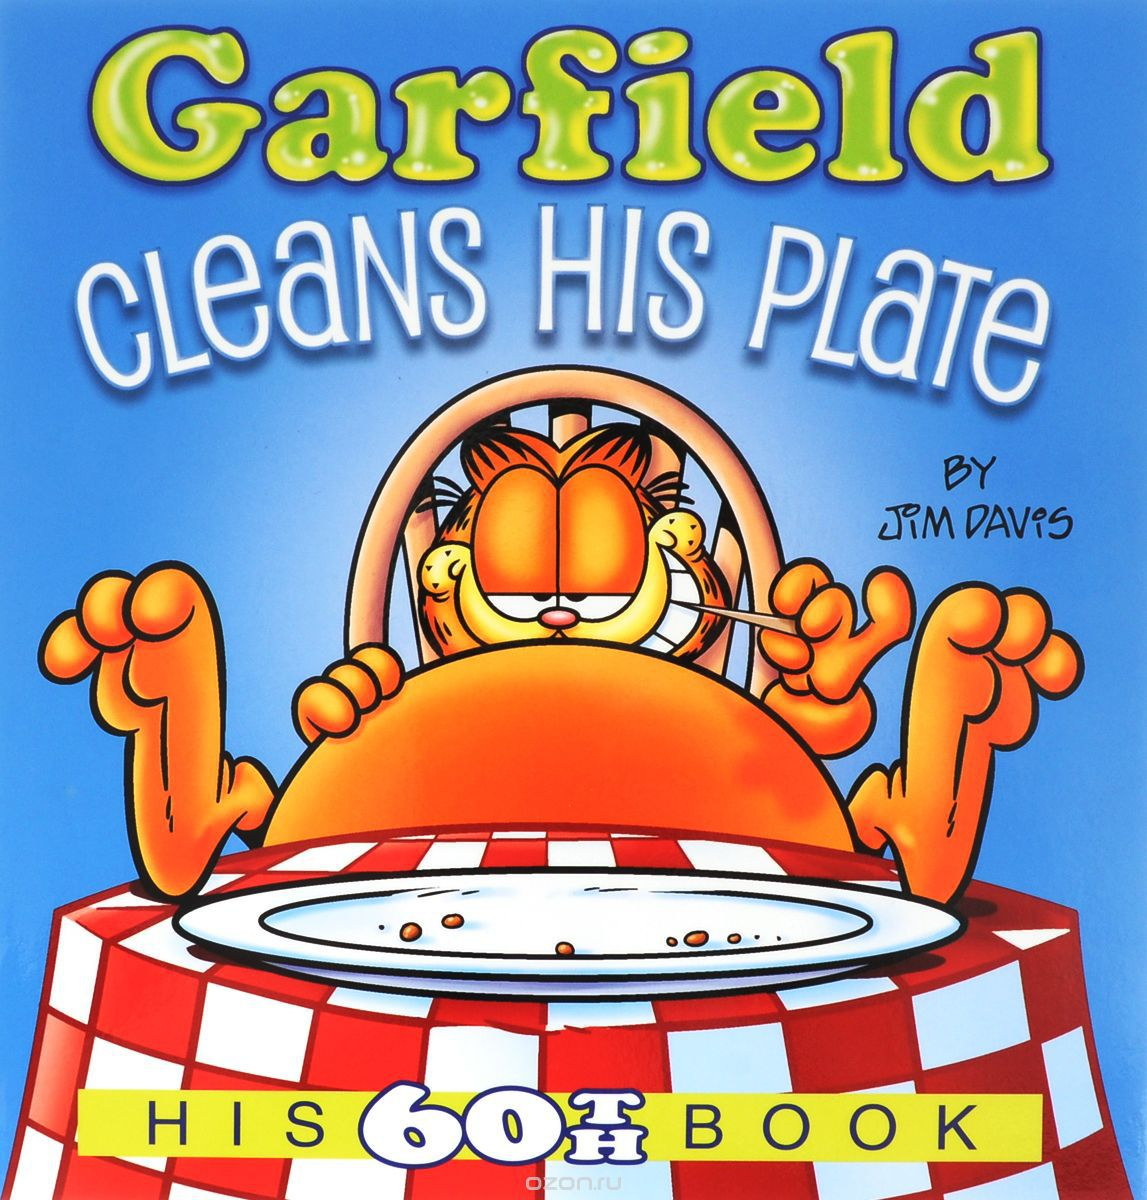 Garfield: Cleans His Plate